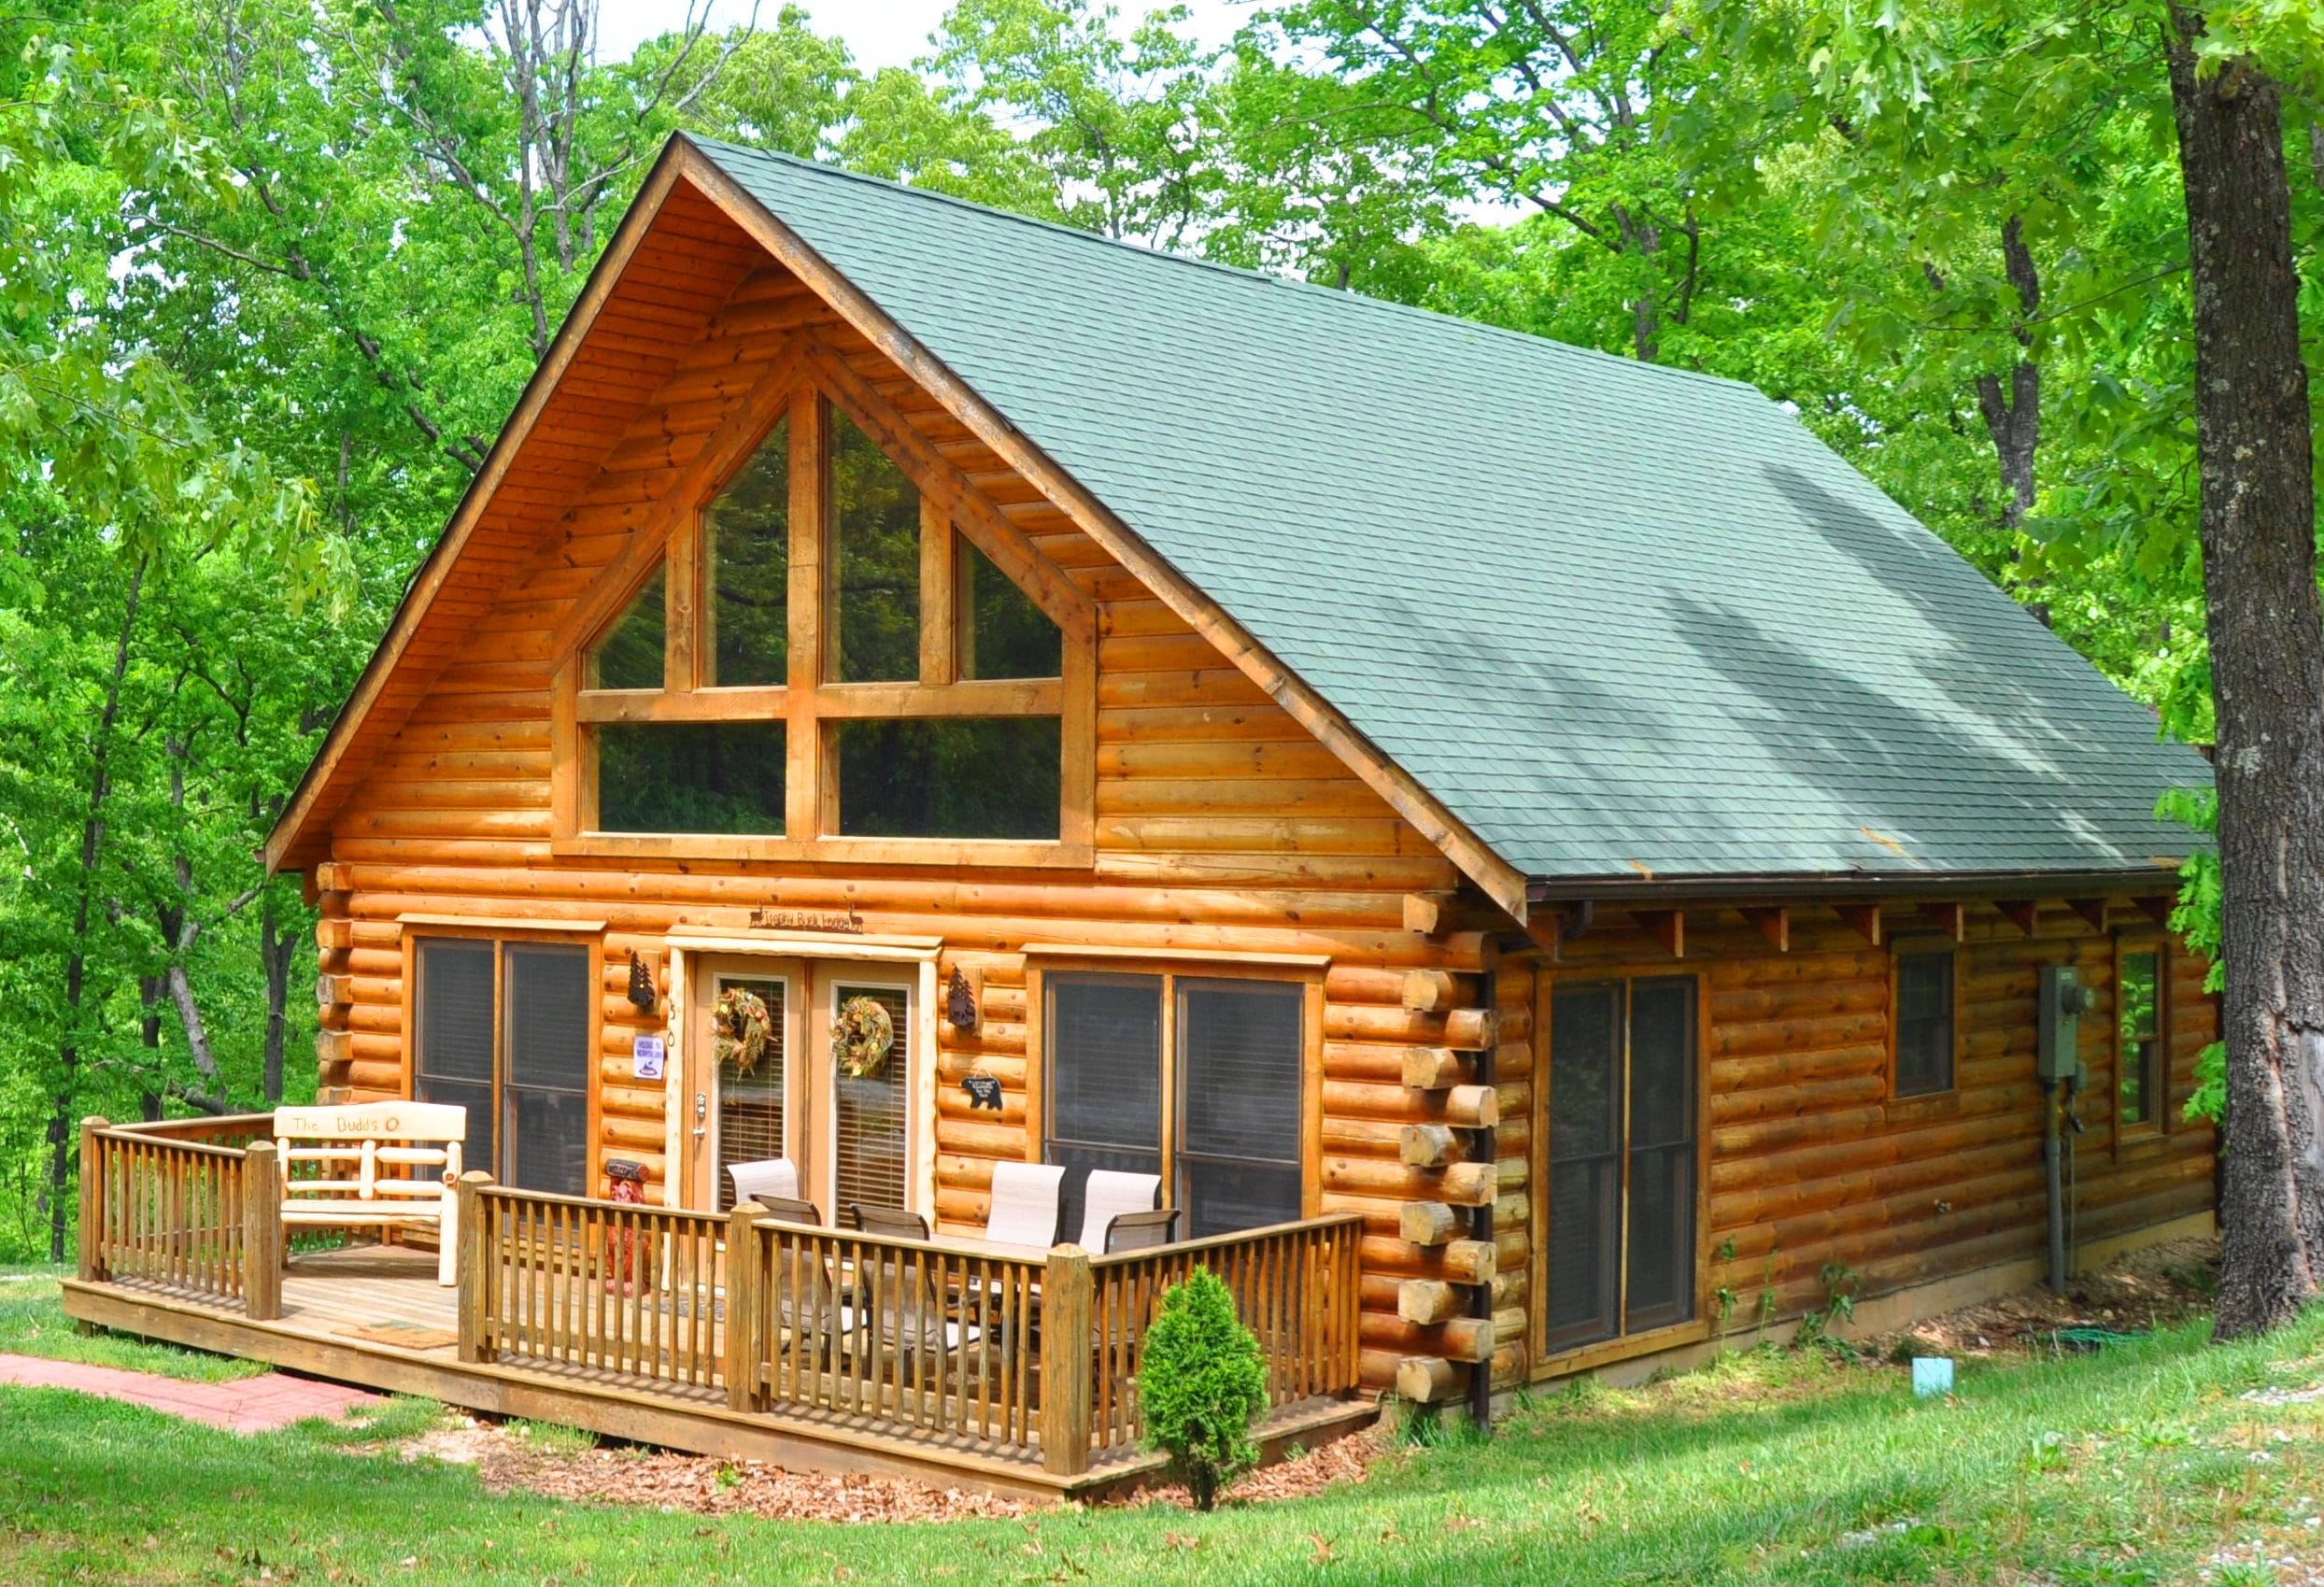 mother cabinsforyou cabin gatlinburgcabin everyone s pin last dream featured pigeonforgecabin is this cabins minute greatsmokymountains rentals